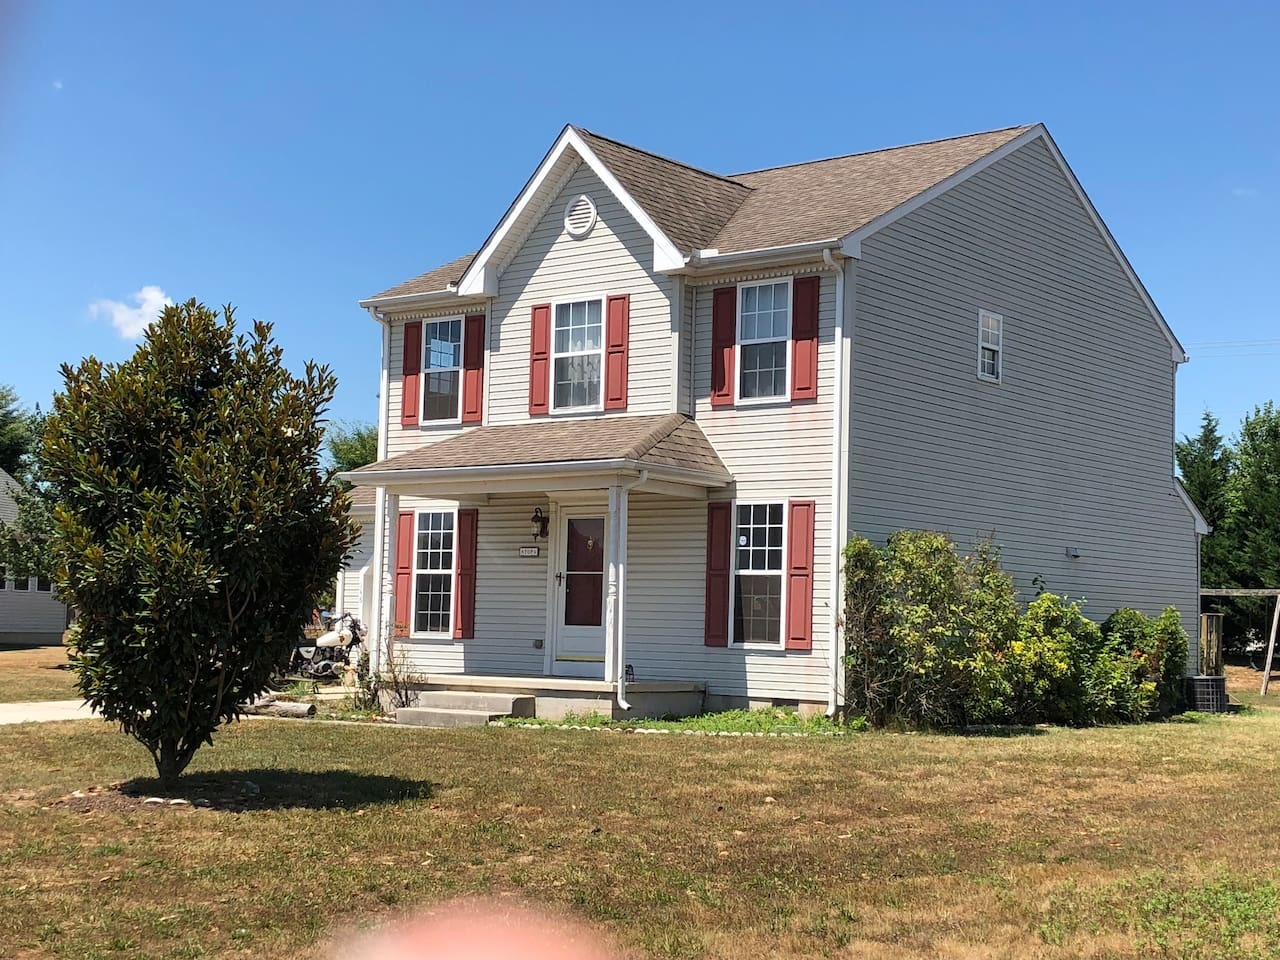 Our 3 bedroom, 2 1/2 bath home is easy to find in the Chimney Hills neighborhood. The house number is on the mailbox next to the road at the end of the driveway.